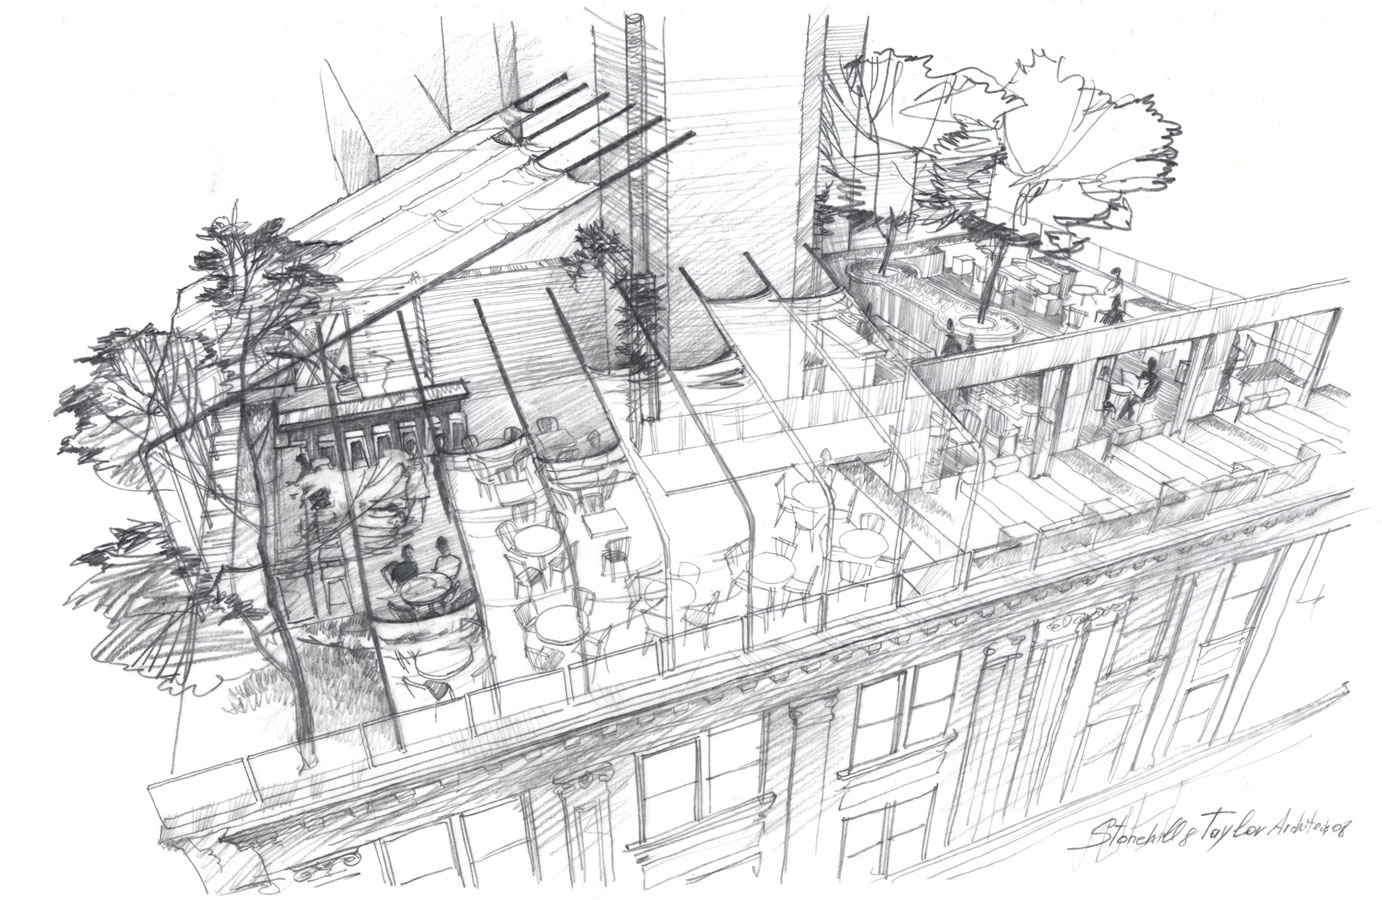 Architectural pencil sketch